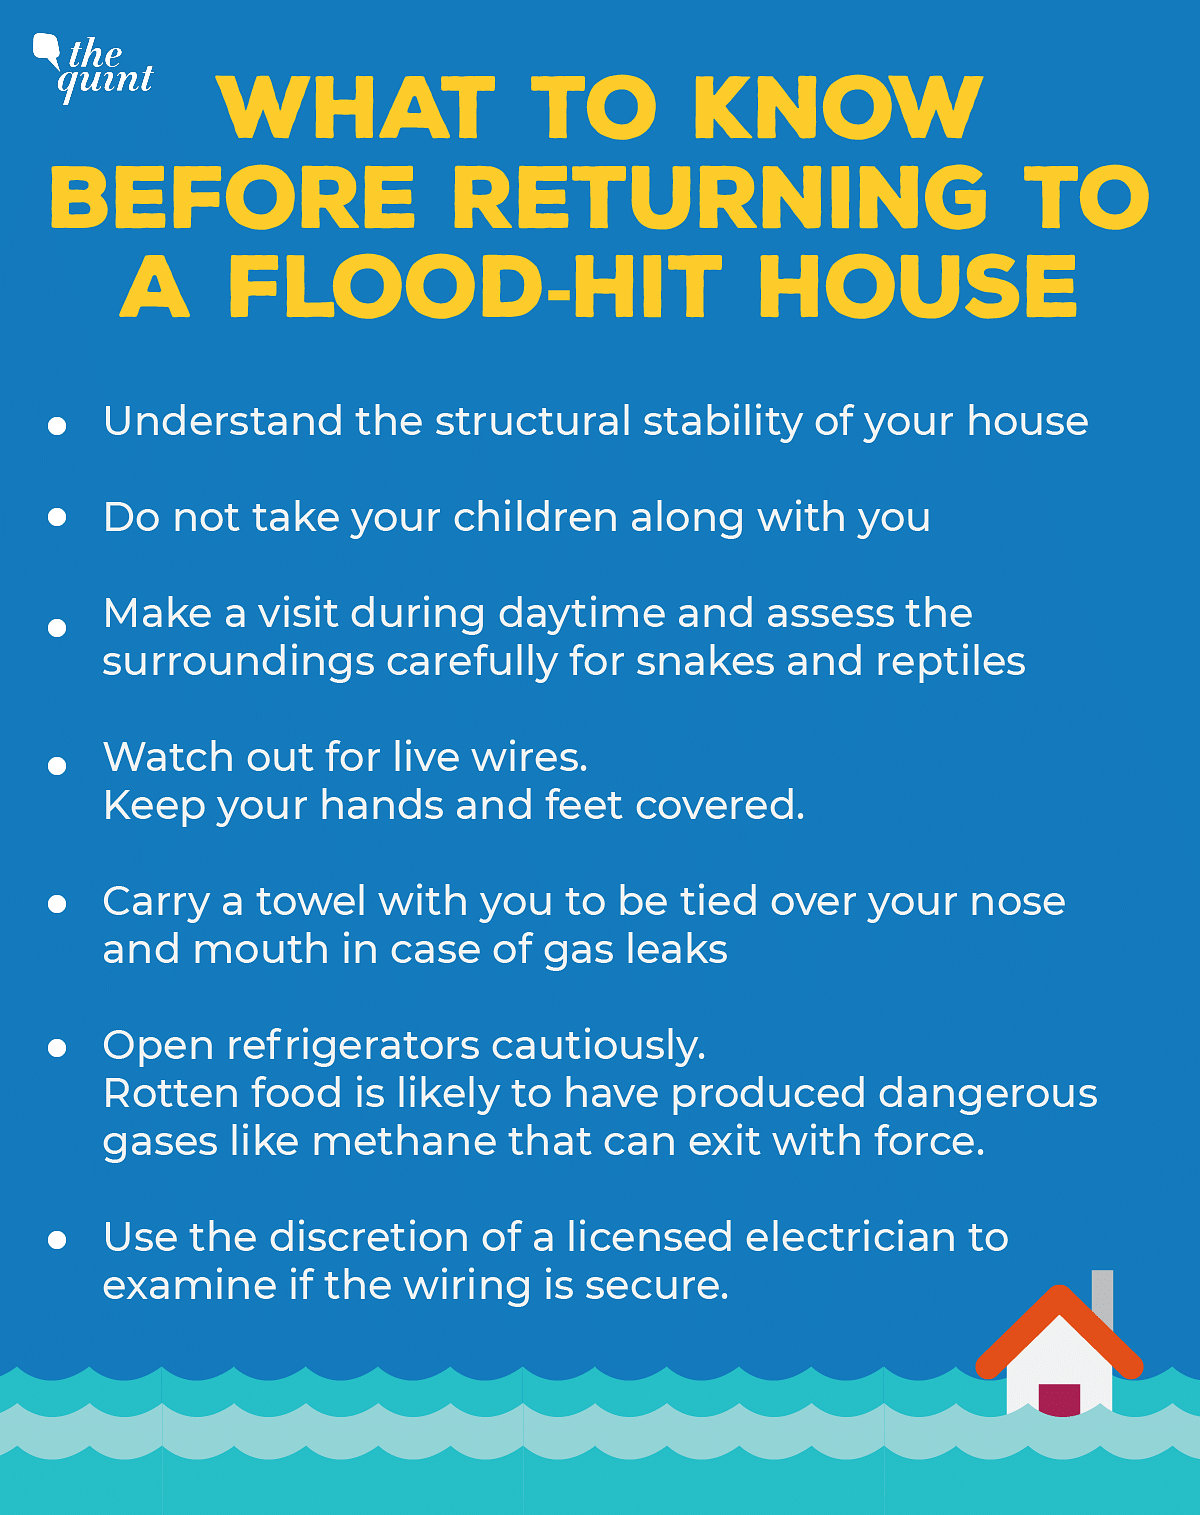 All you need to know before returning to a flood-hit home.